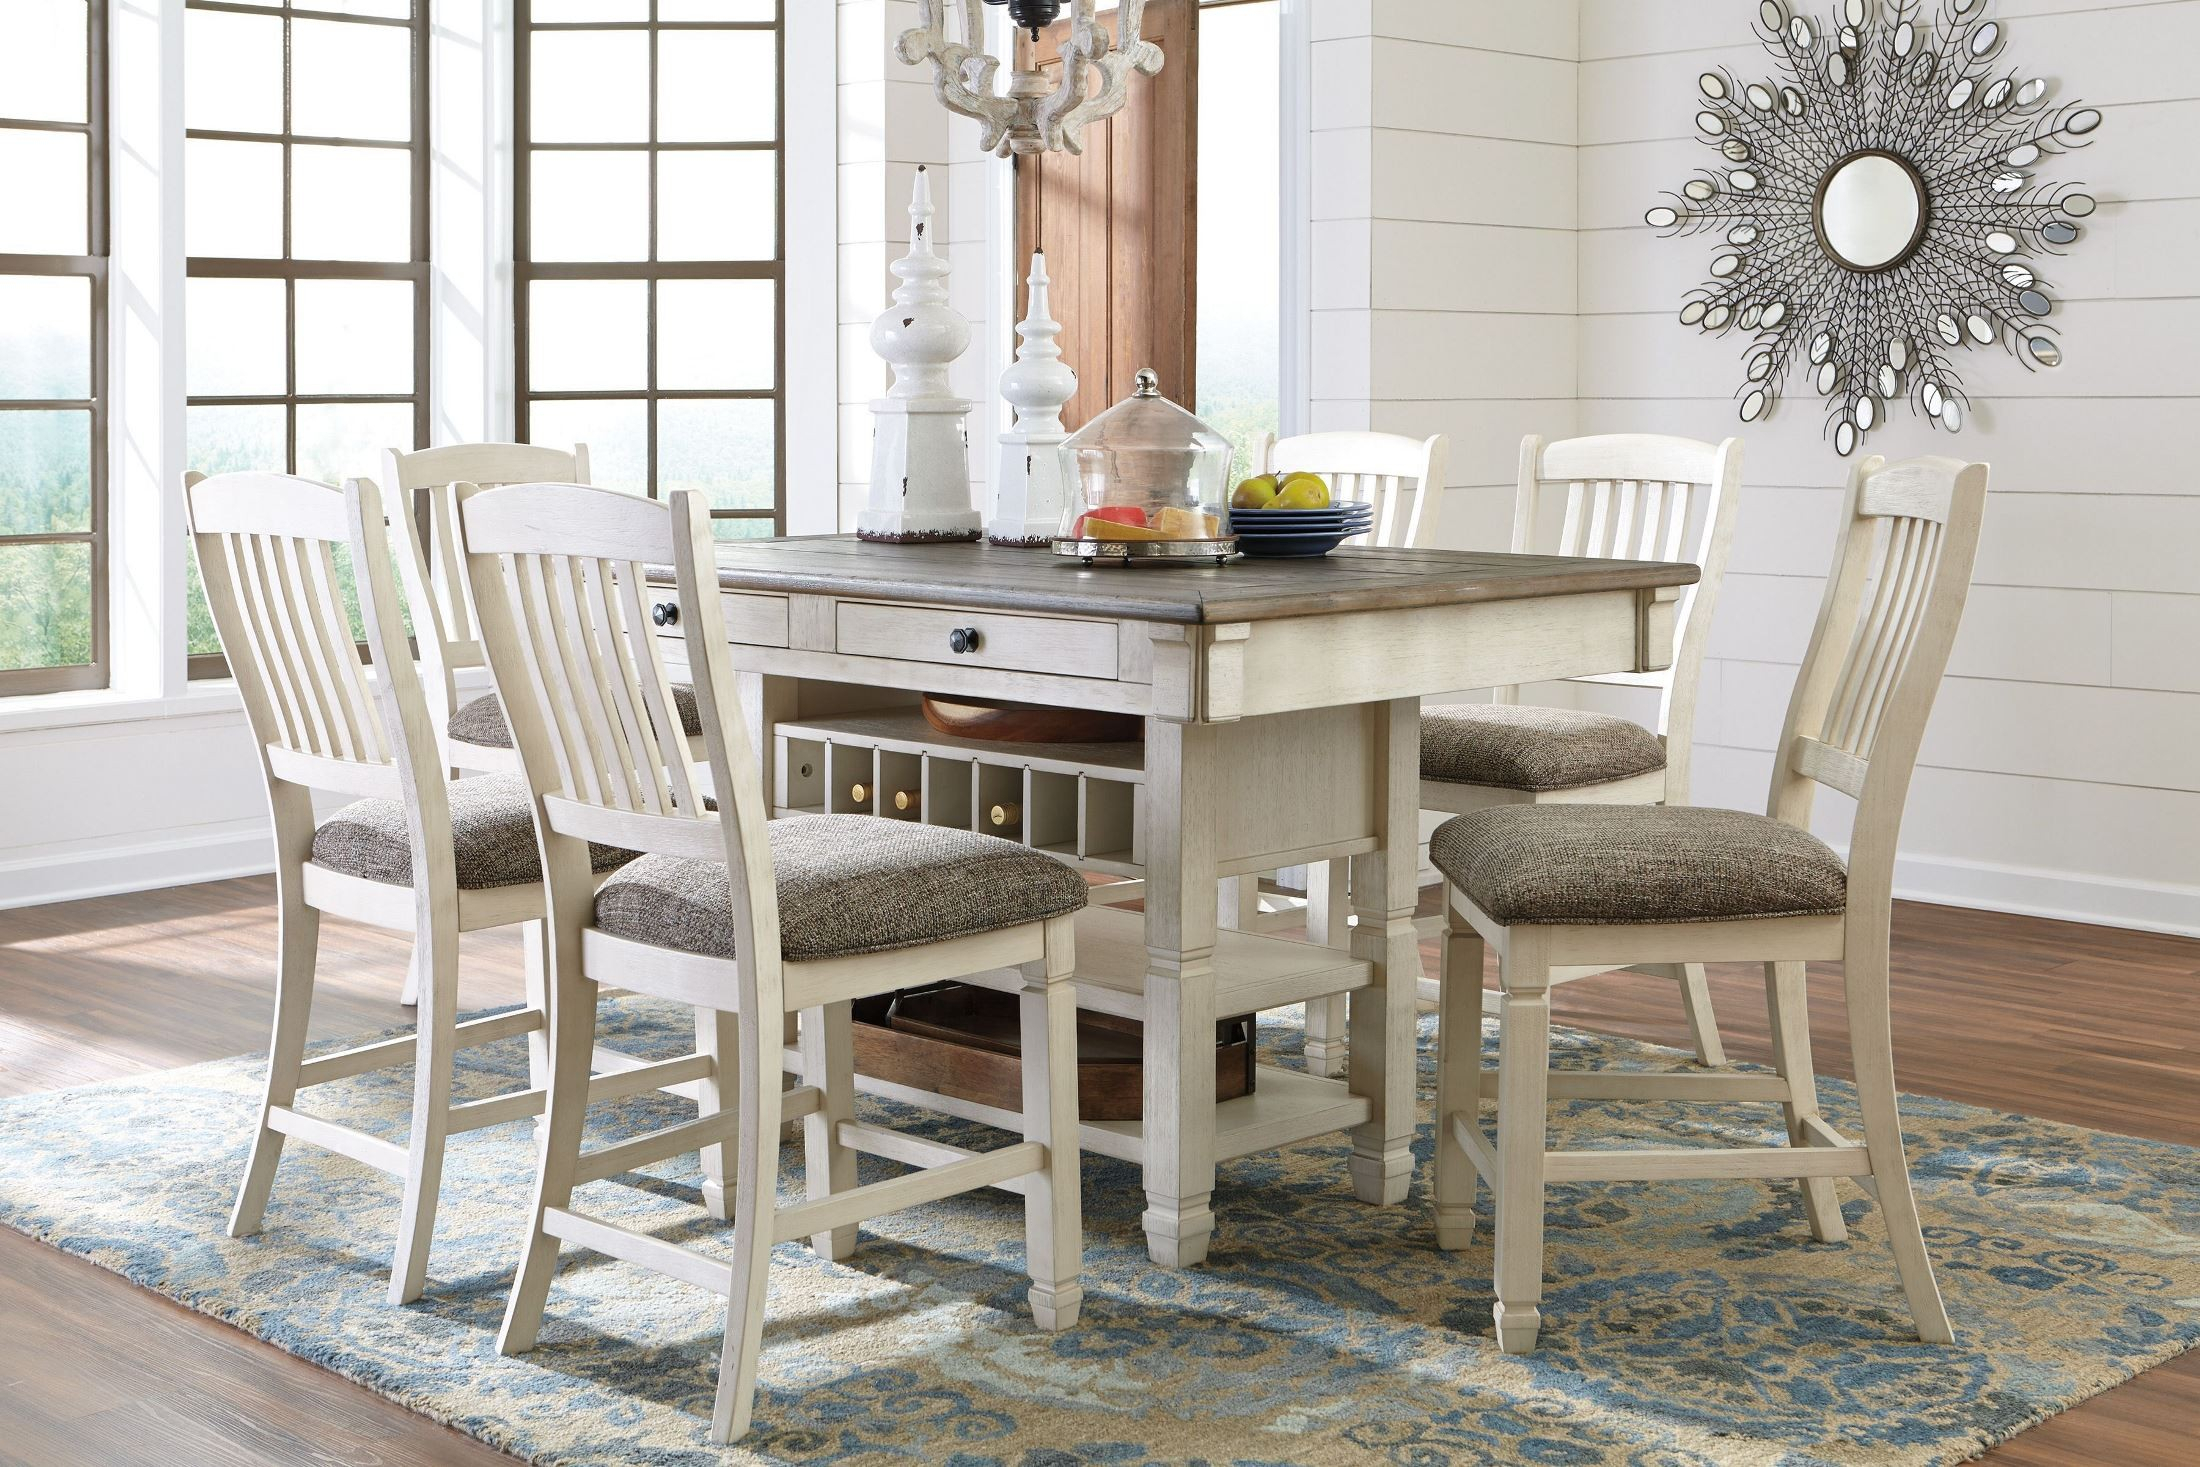 Bolanburg White And Gray Rectangular Counter Height Dining Regarding Most Recent Hearne Counter Height Dining Tables (View 8 of 15)